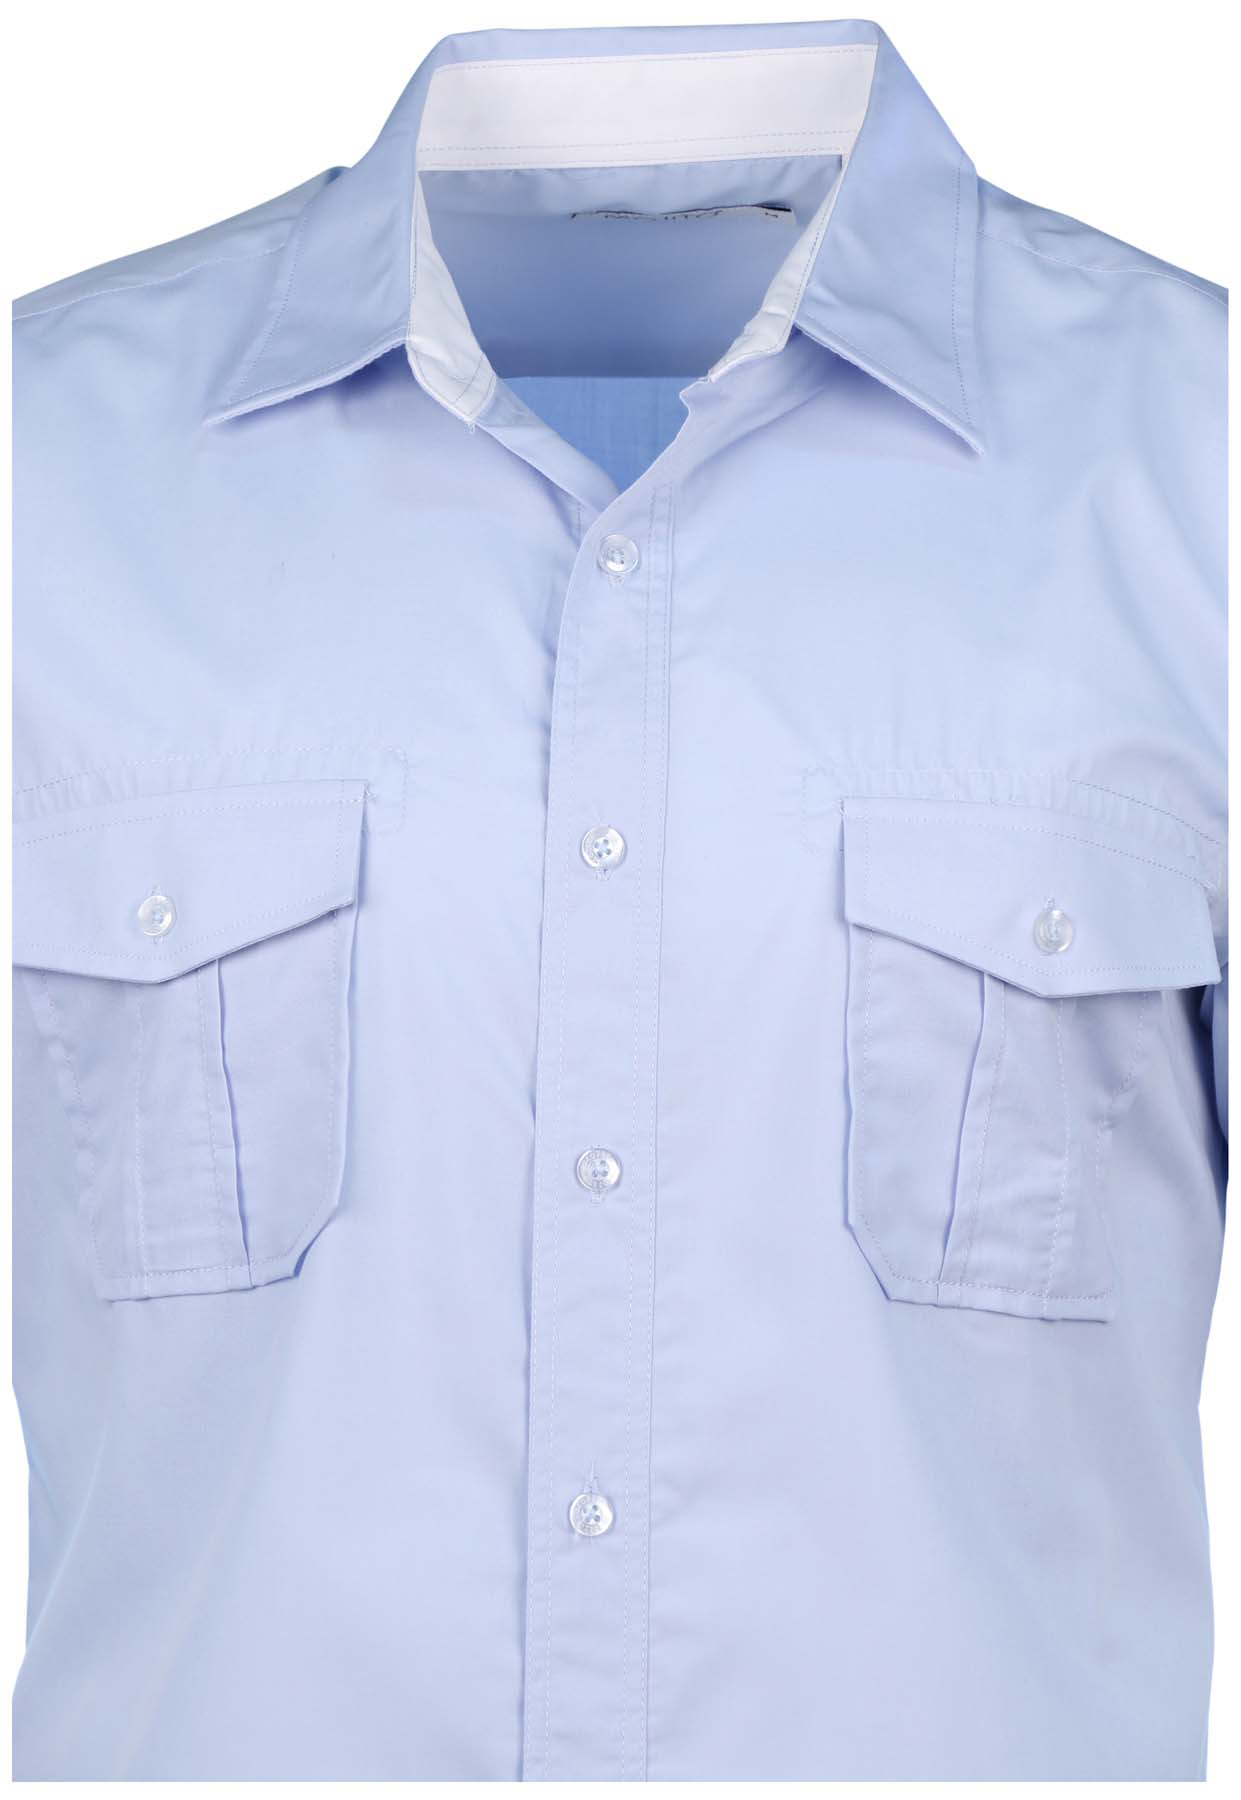 Mojito collection men 39 s 2 pocket short sleeve button down for Mens double pocket short sleeve shirts